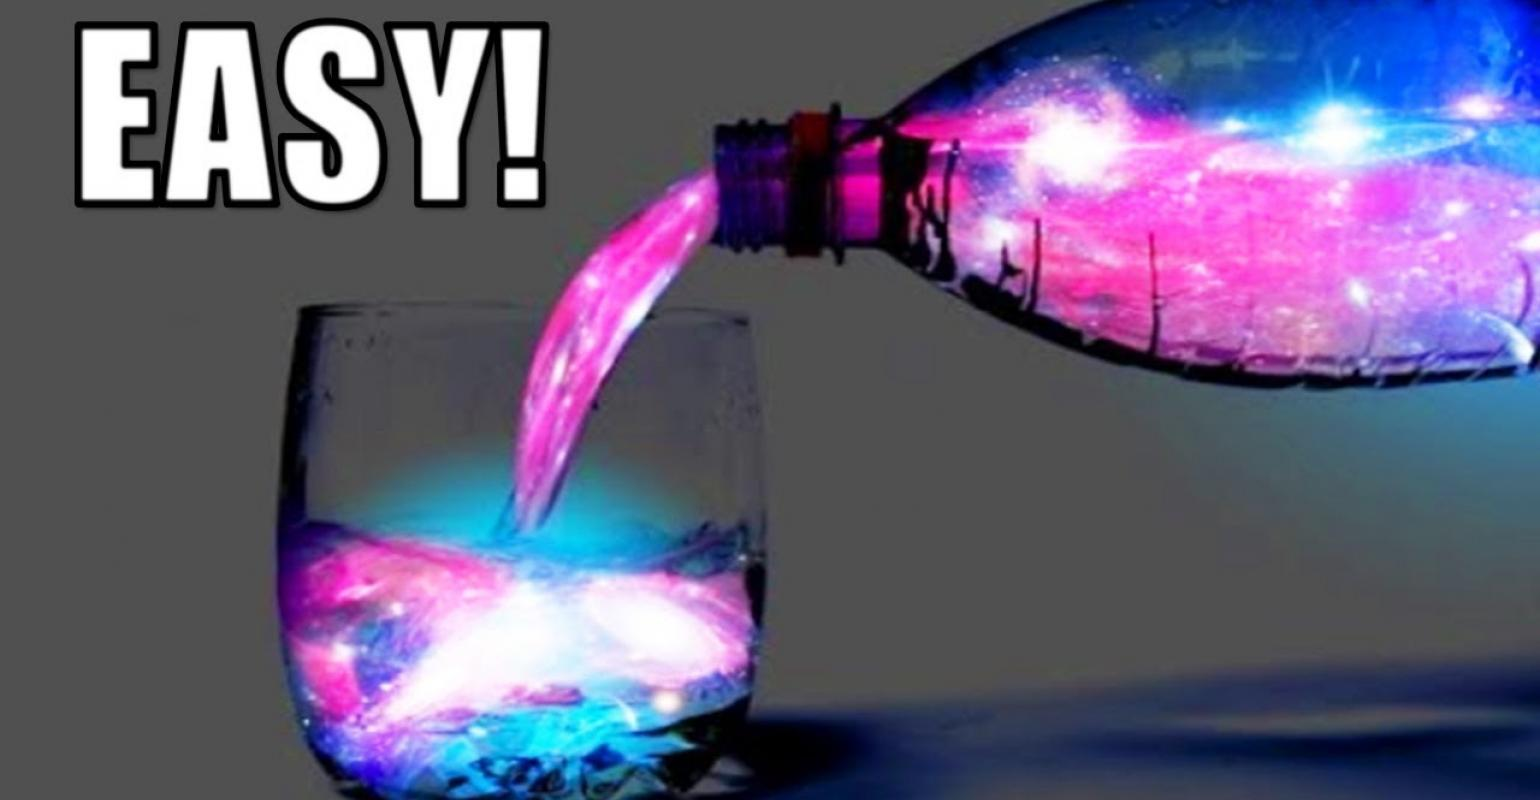 experiments science easy cool projects fun funny friday scientific hacks designnews water friends paper